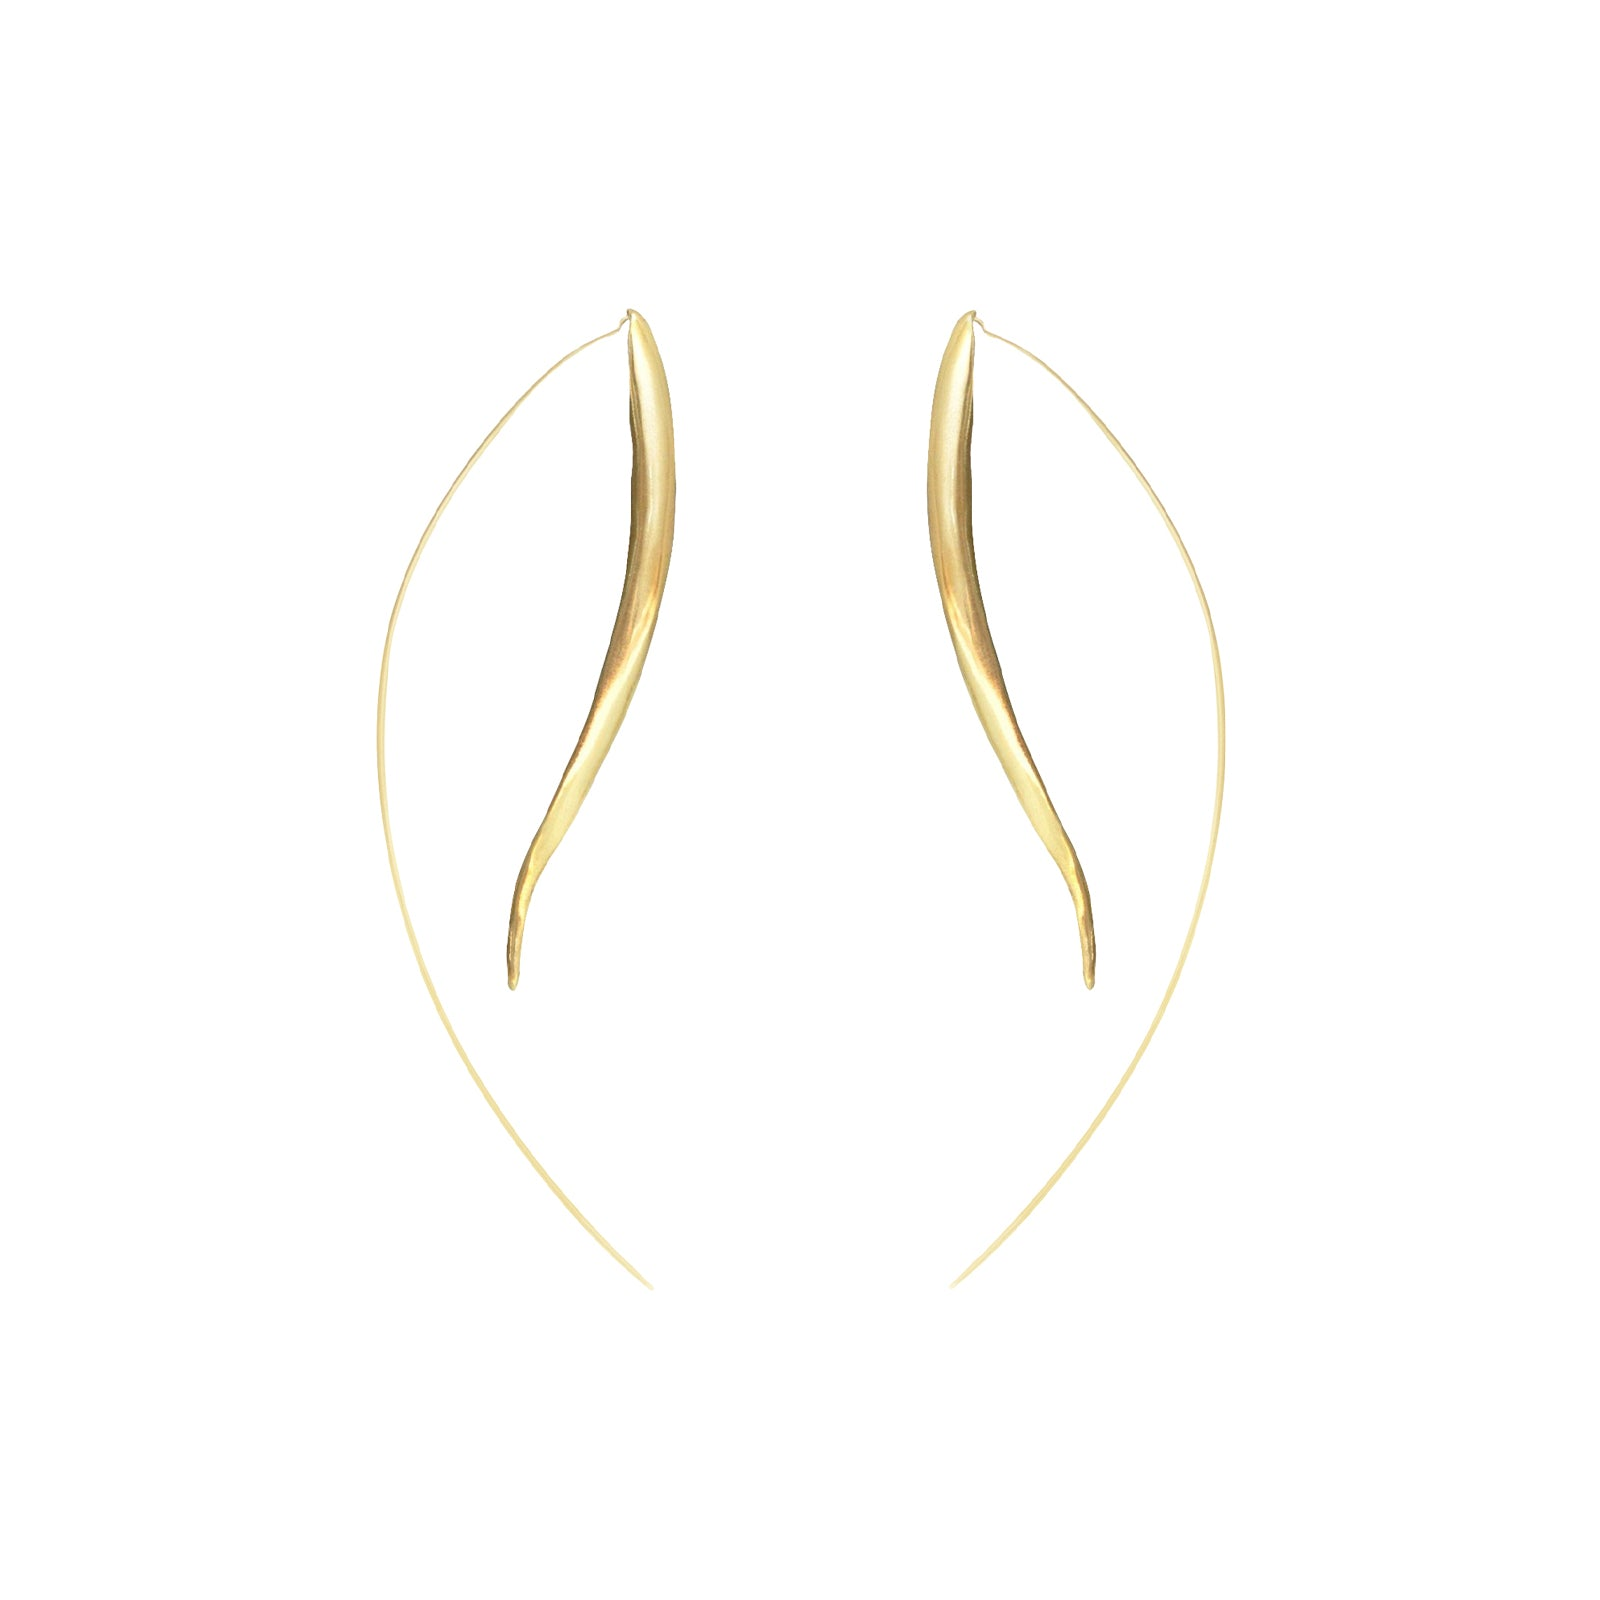 Ariana Boussard-Reifel Kalahari Earrings - Brass - Earrings - Broken English Jewelry